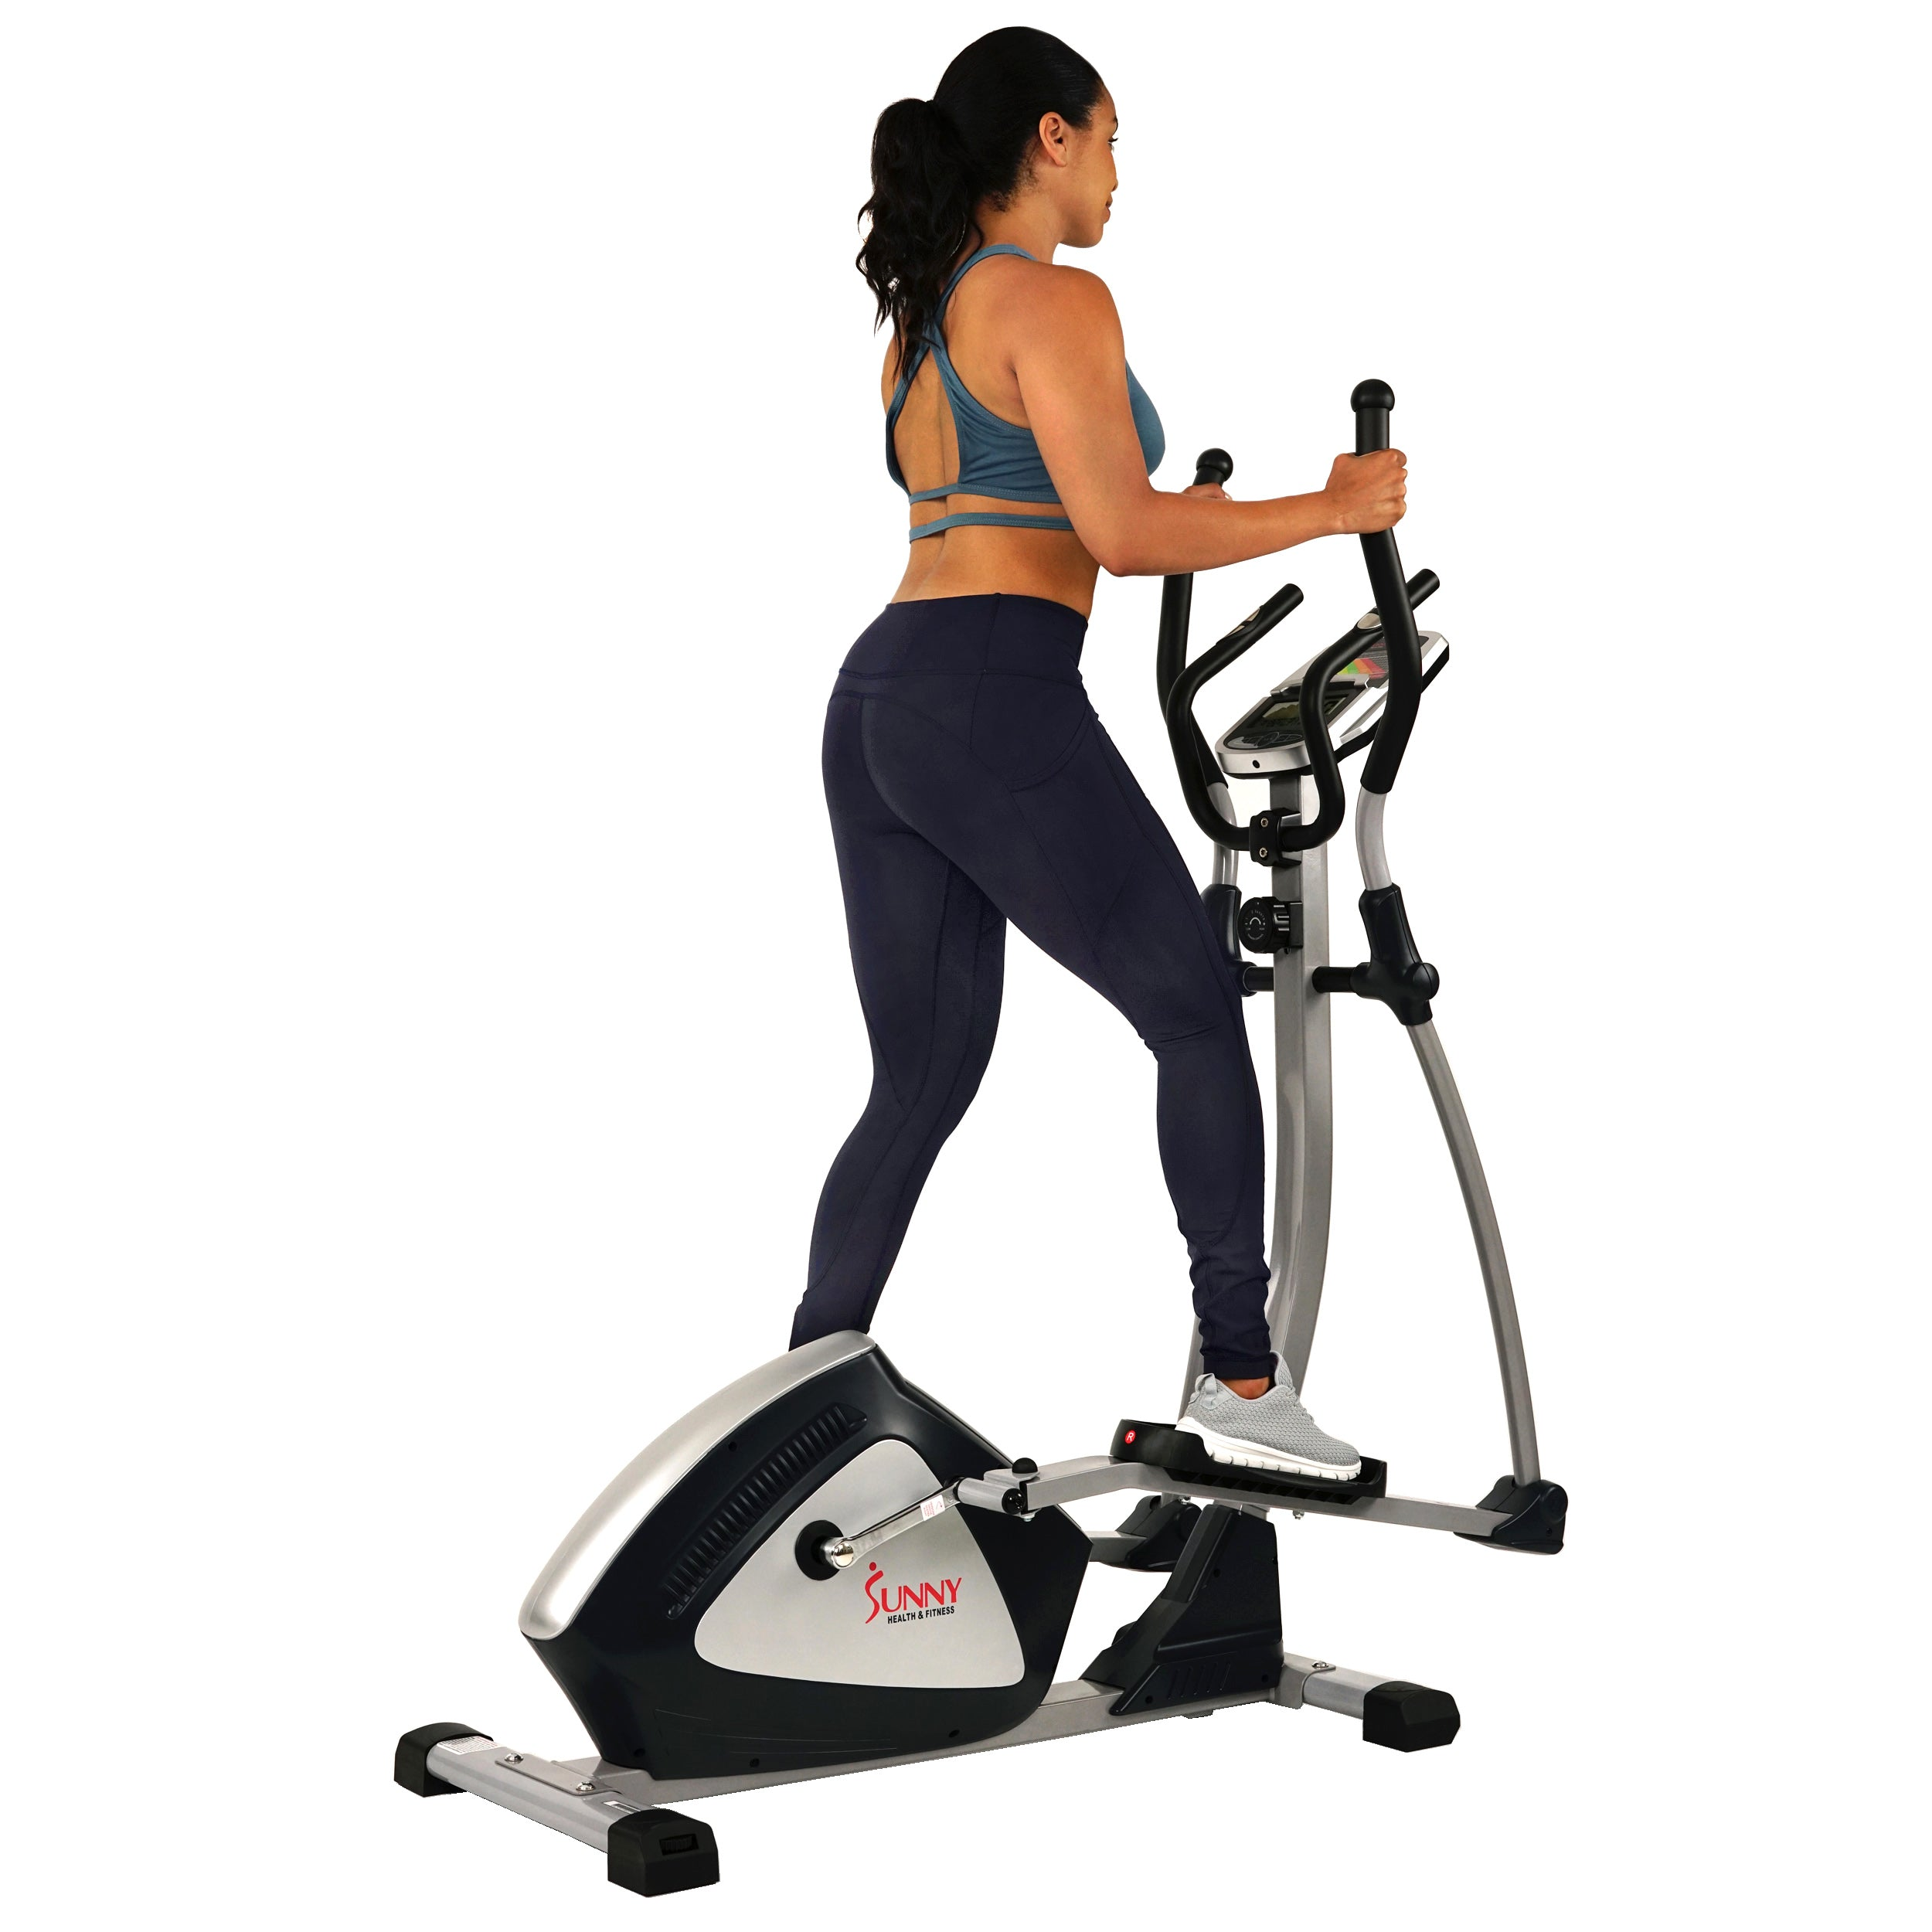 sunny-health-fitness-ellipticals-magnetic-elliptical-machine-tablet-holder-LCD-monitor-heart-rate-monitoring-enderance-zone-SF-E3804-durable